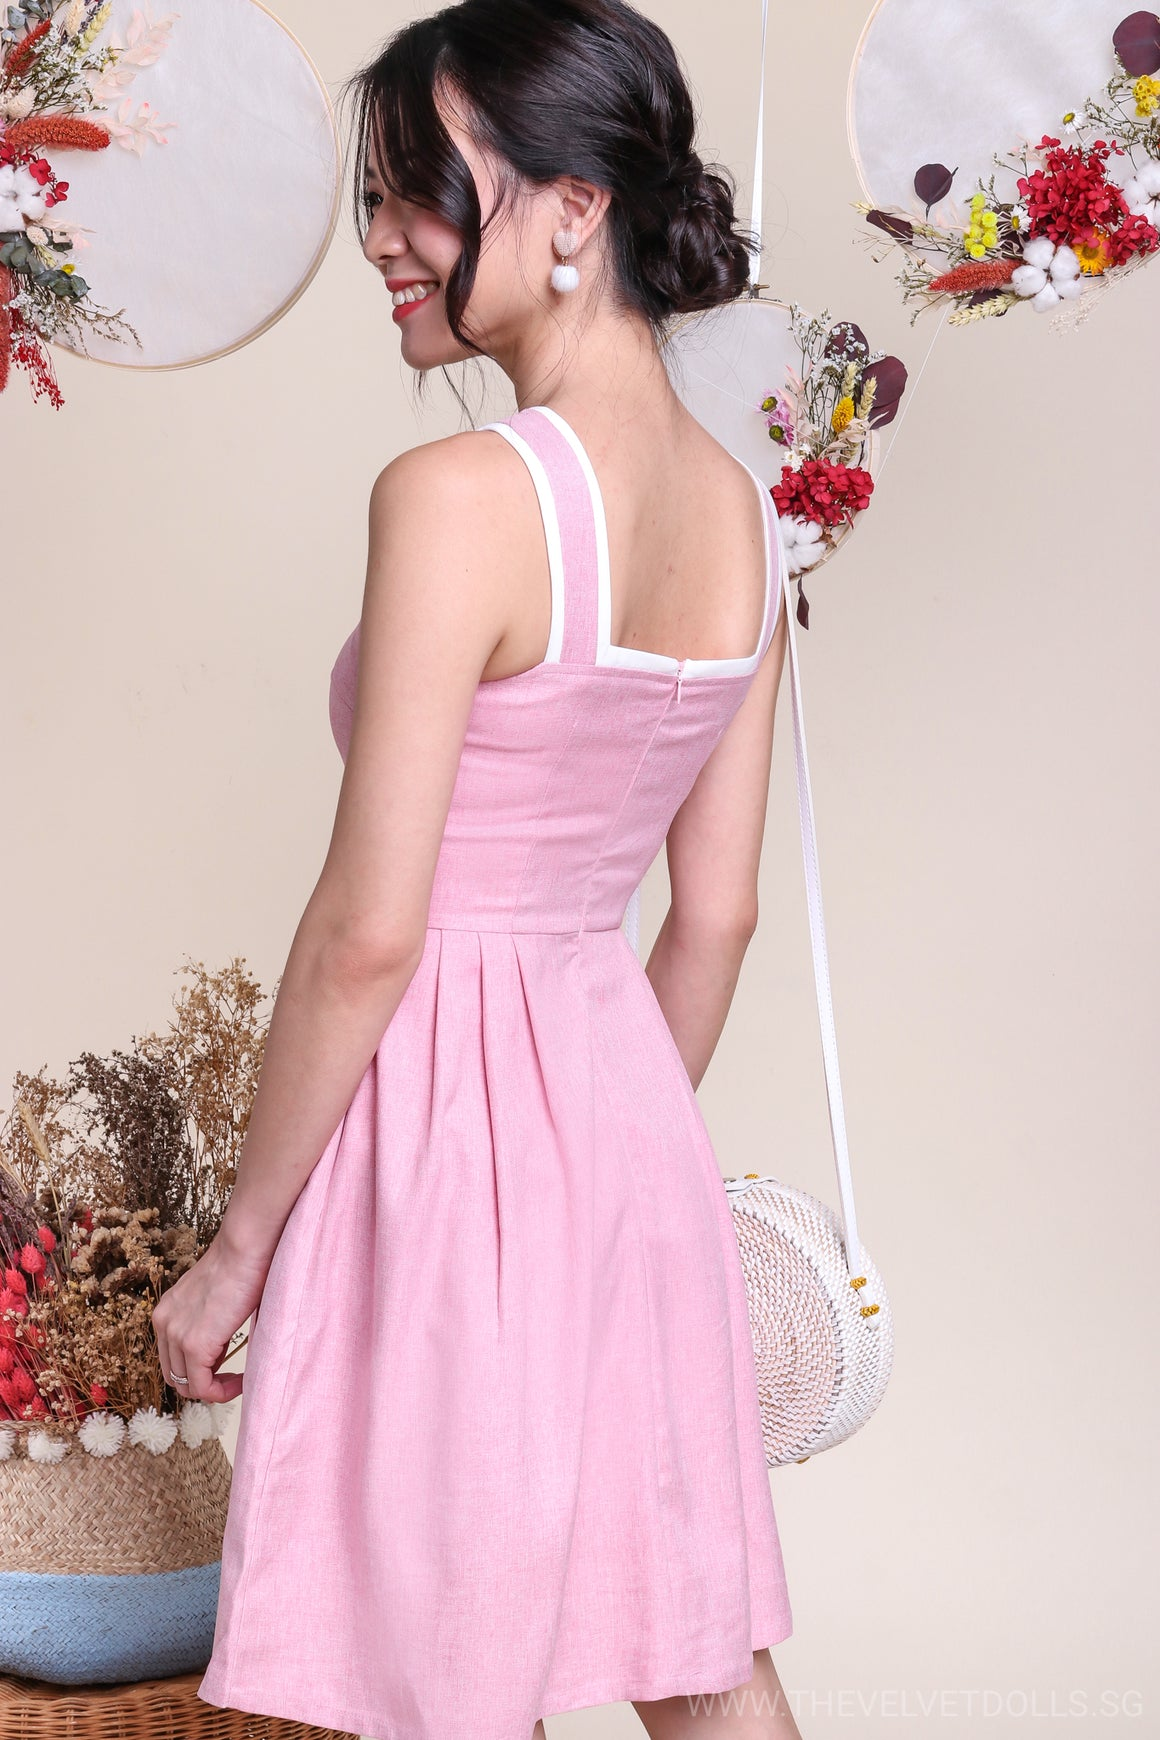 Poetic Trimming Dress in Pink